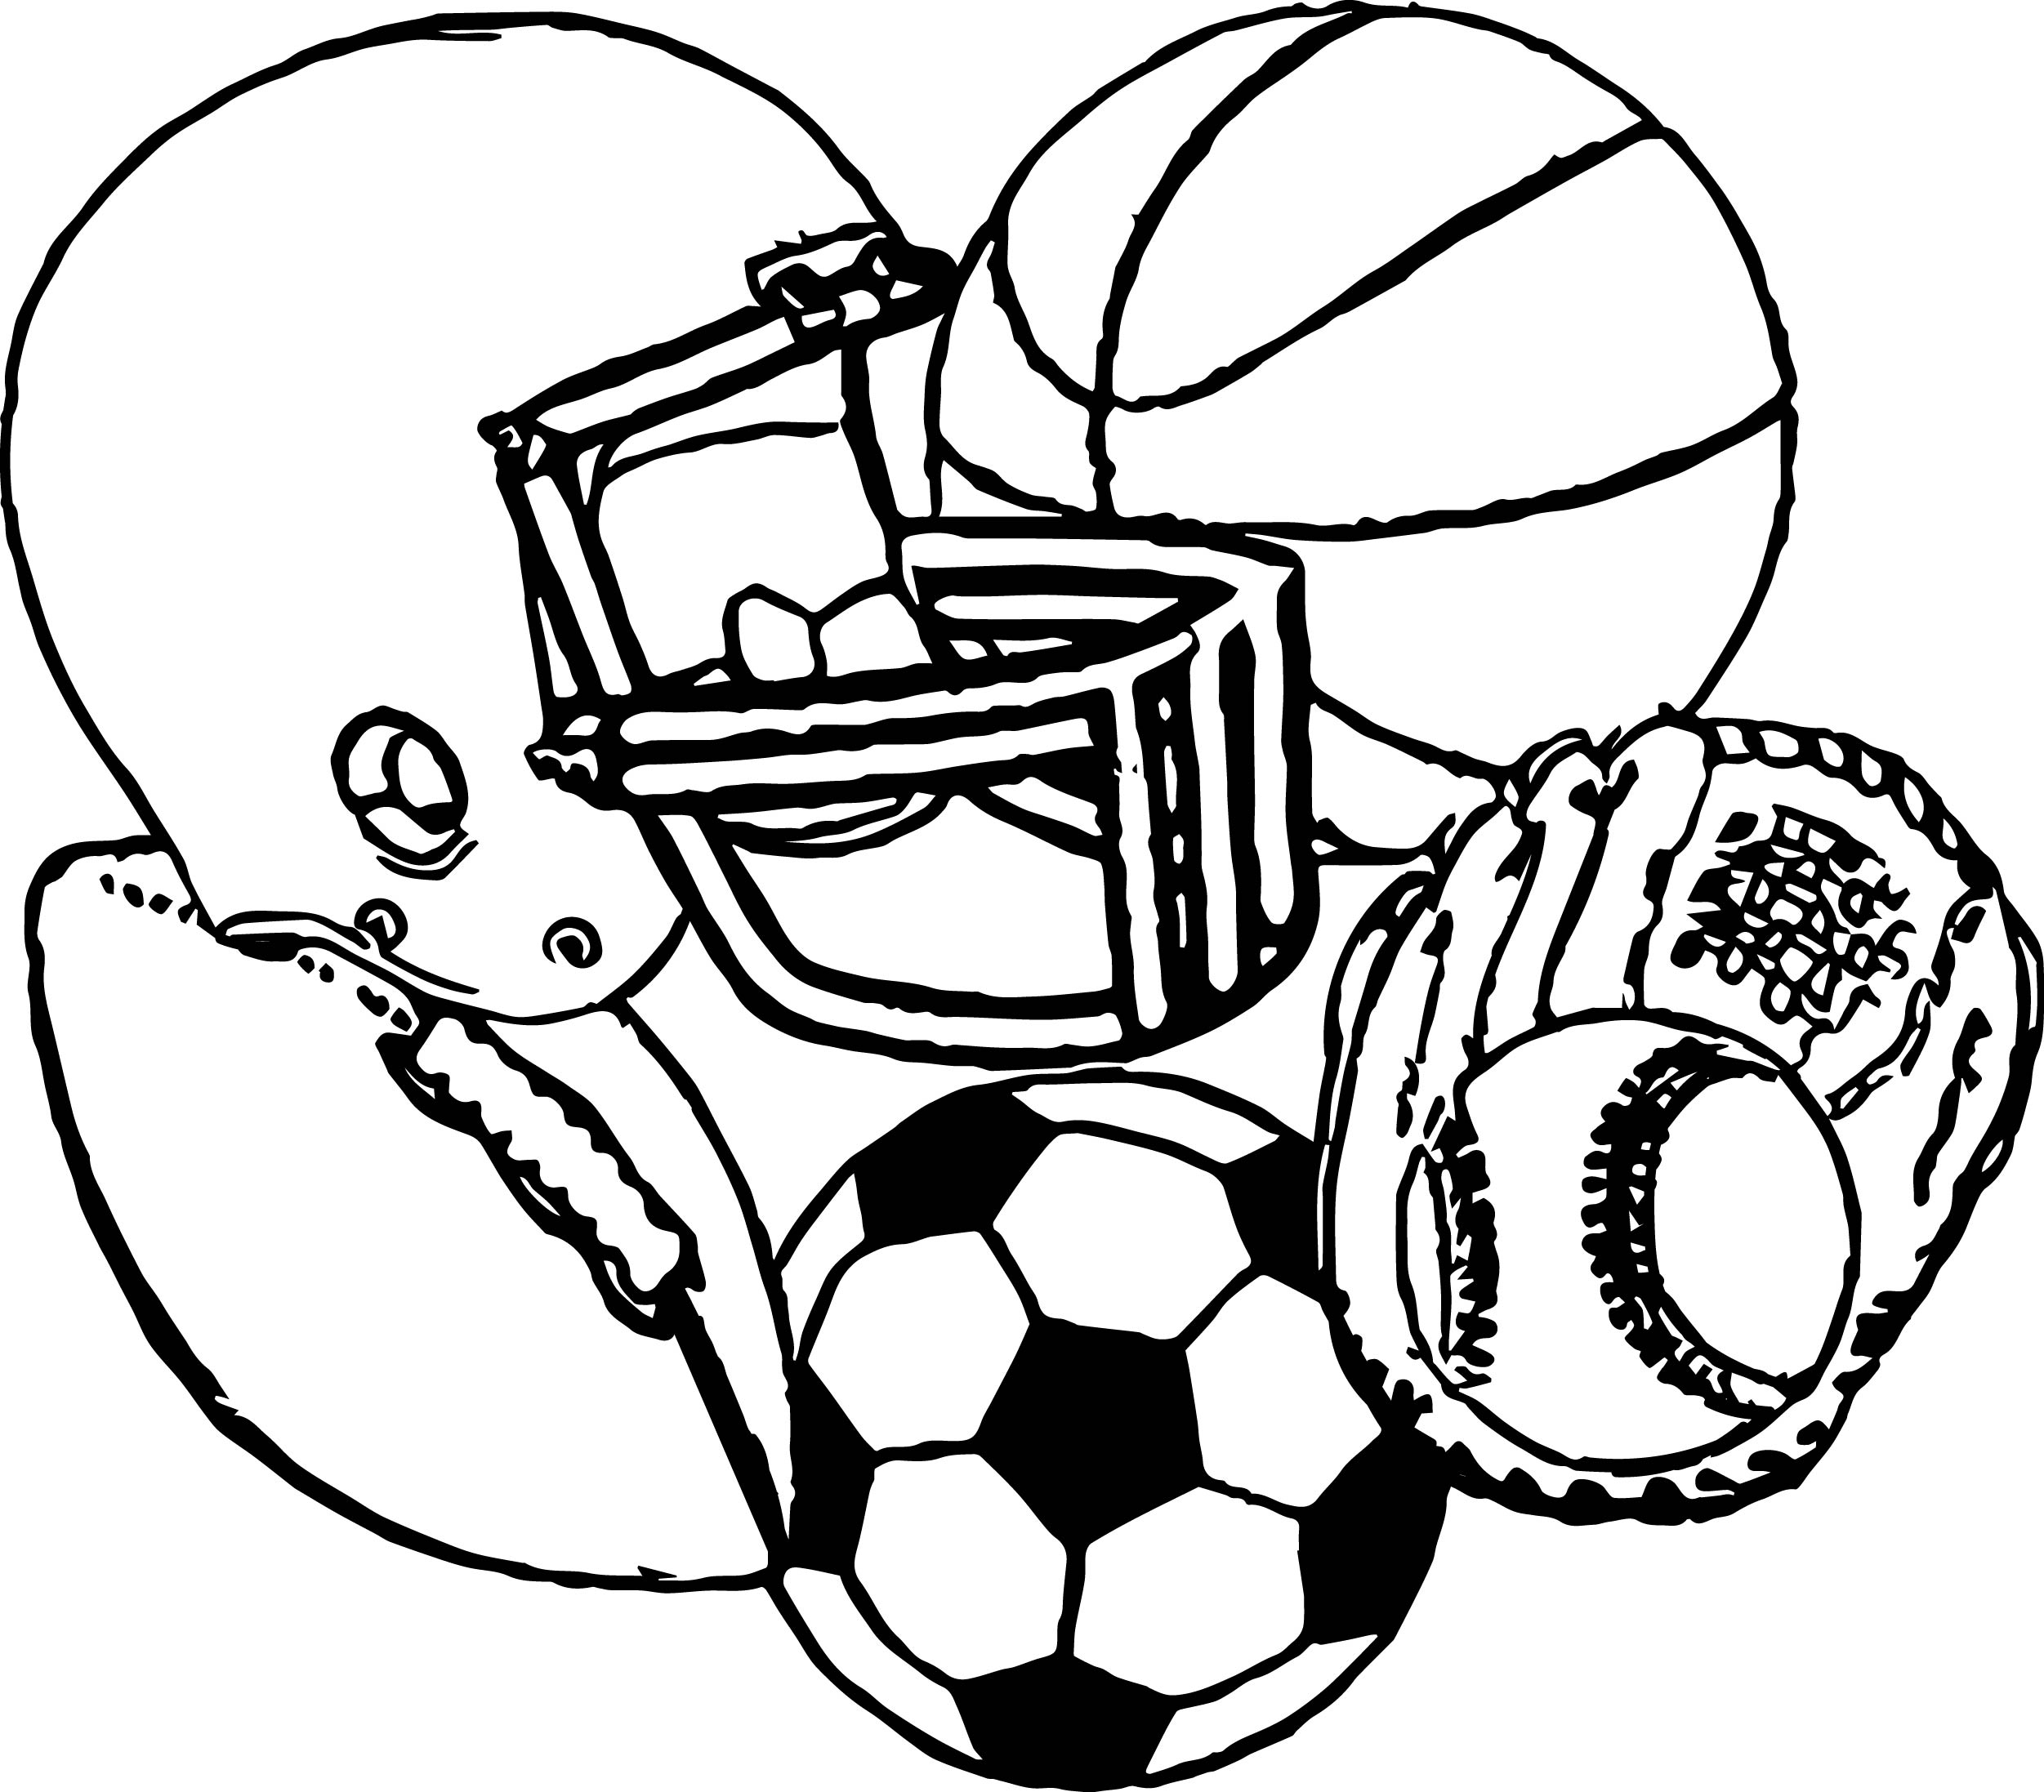 Sports Activity Coloring Page